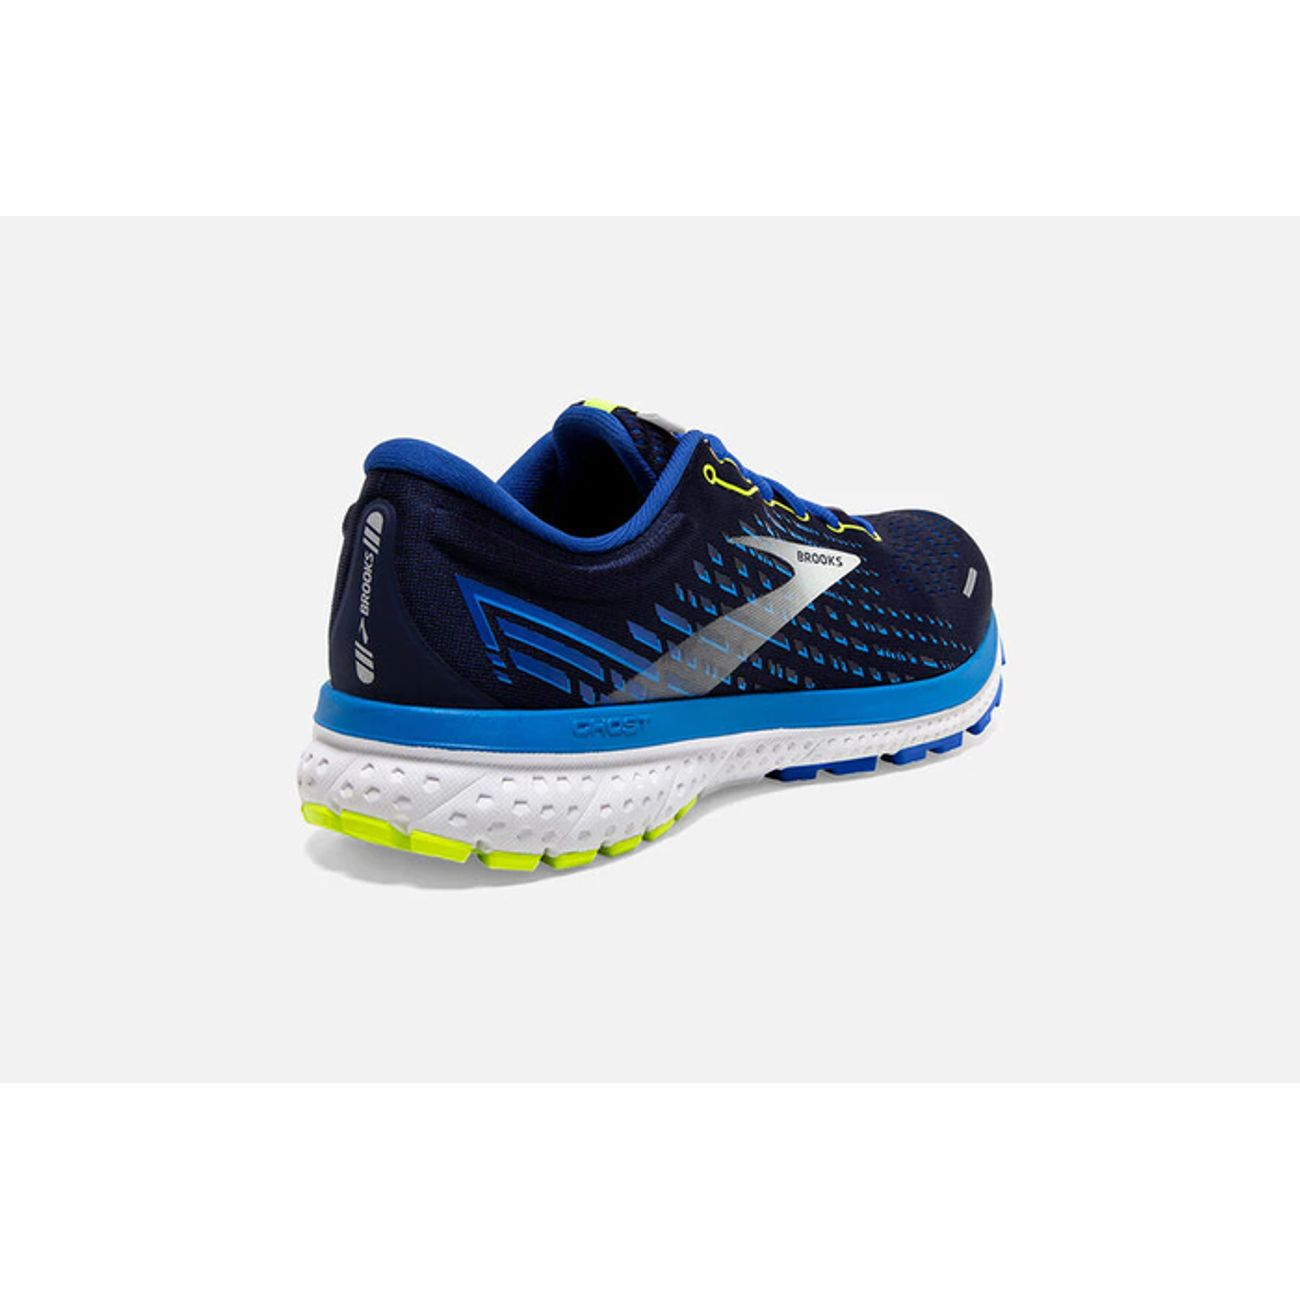 CHAUSSURES BASSES running homme BROOKS GHOST 13 M